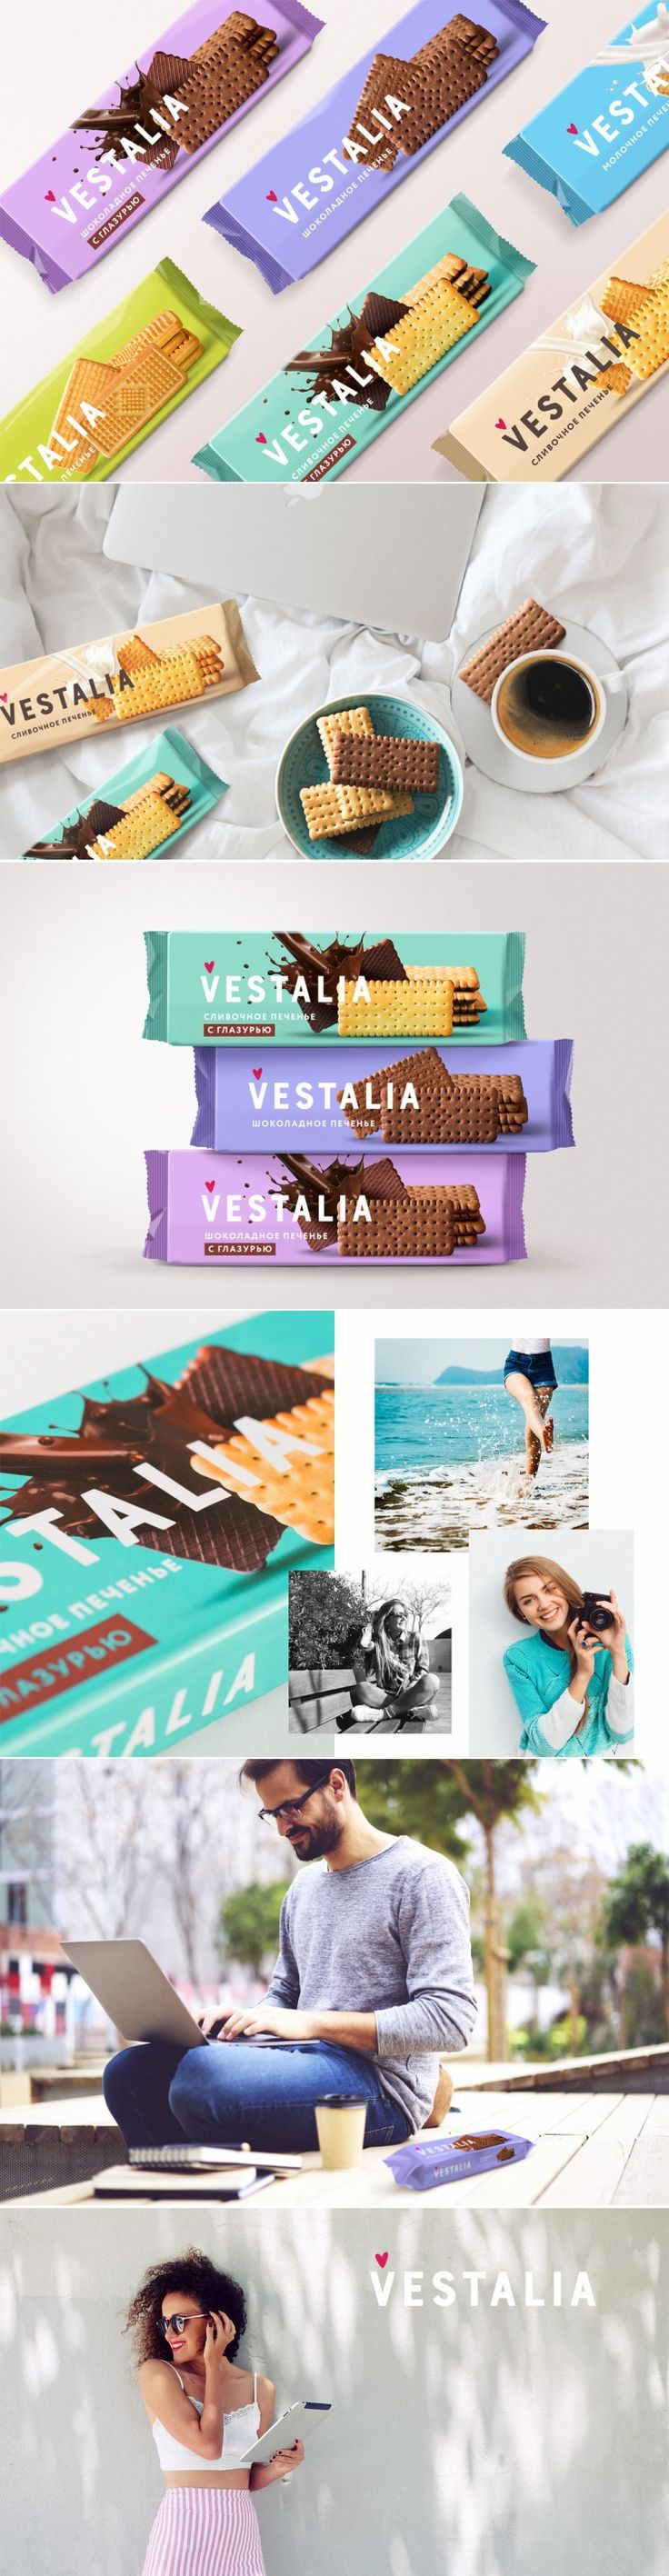 Vestalia Cookies Are Sure To Put You in a Good Mood — The Dieline | Packaging & Branding Design & Innovation News